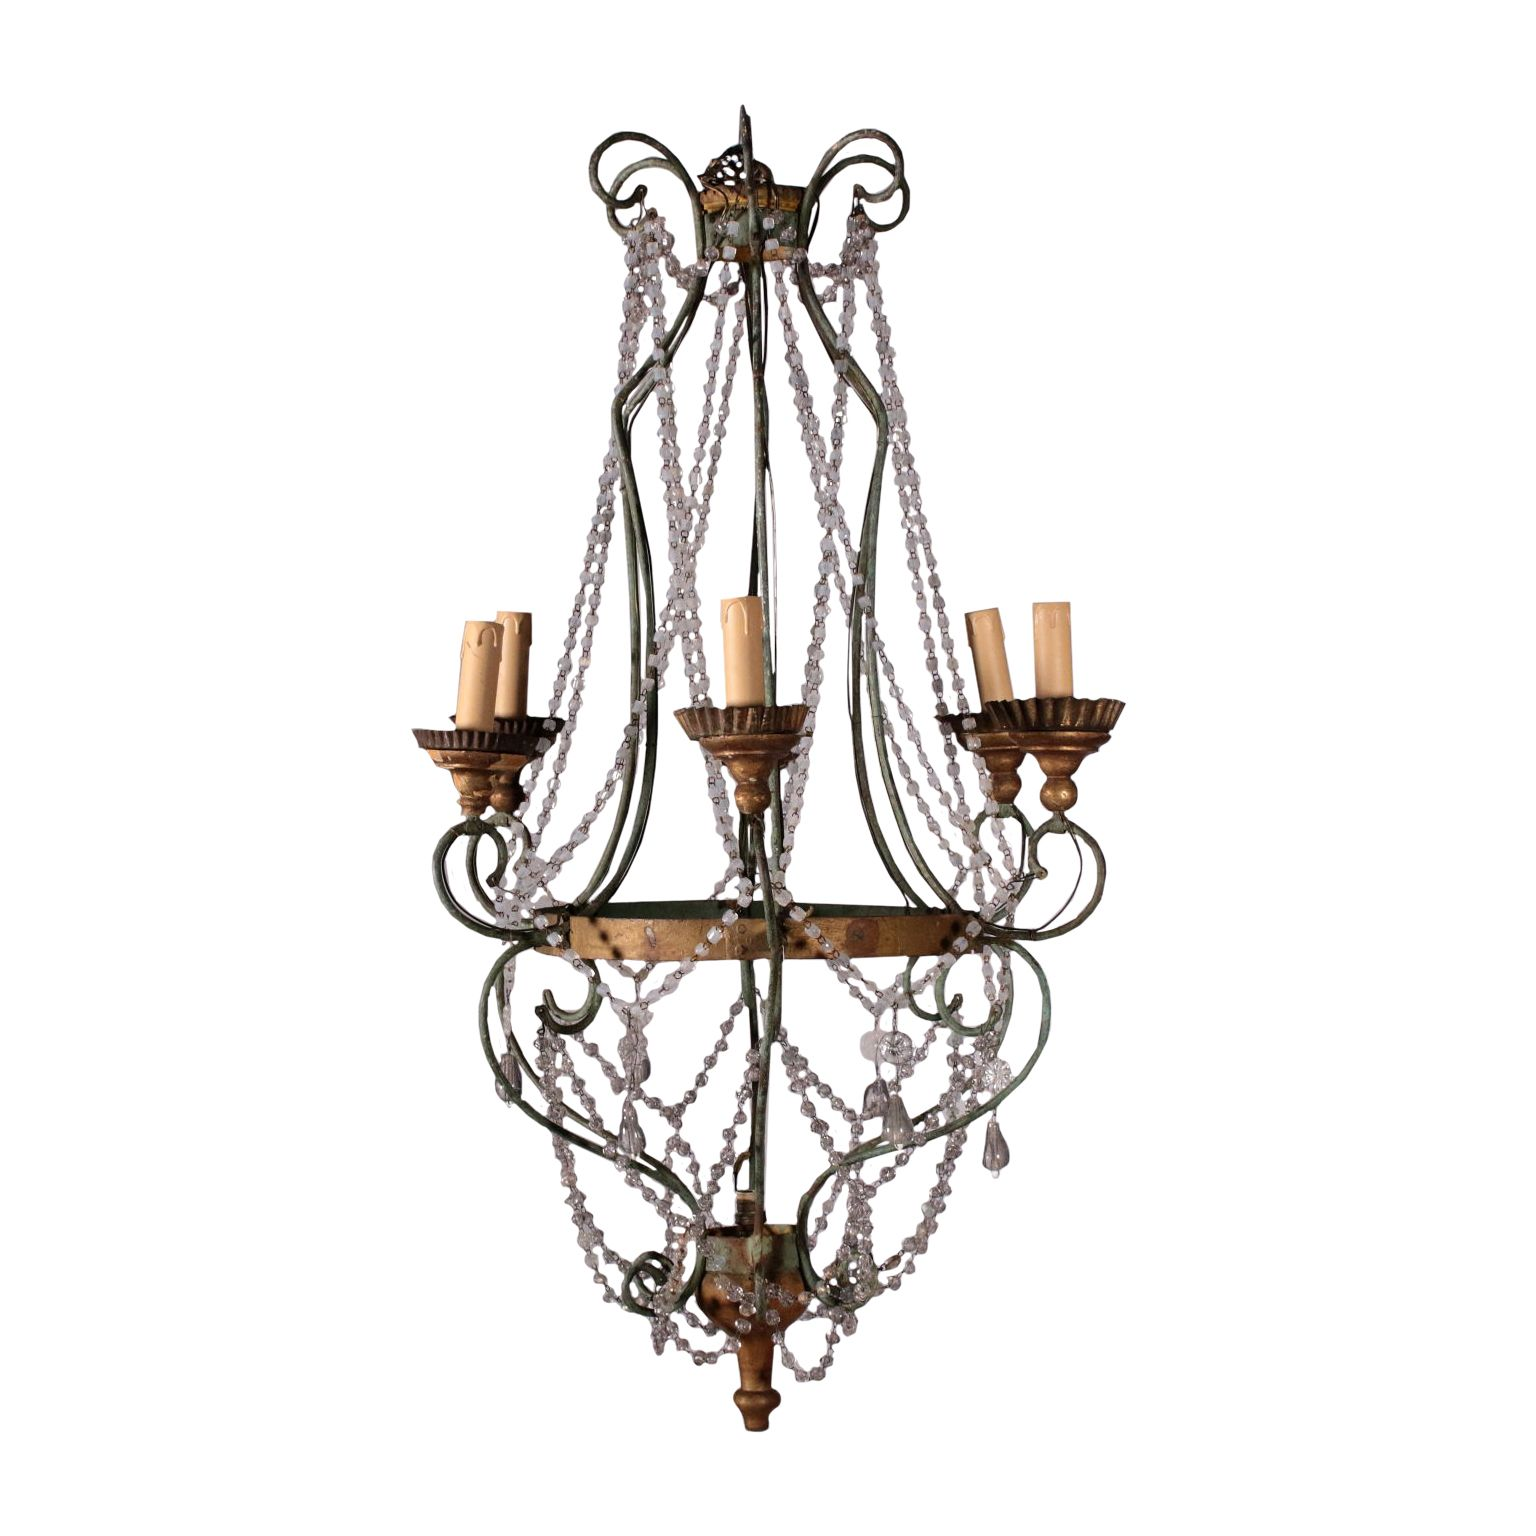 Chandelier Wrought Iron And Glass Italy 19th Century Antike